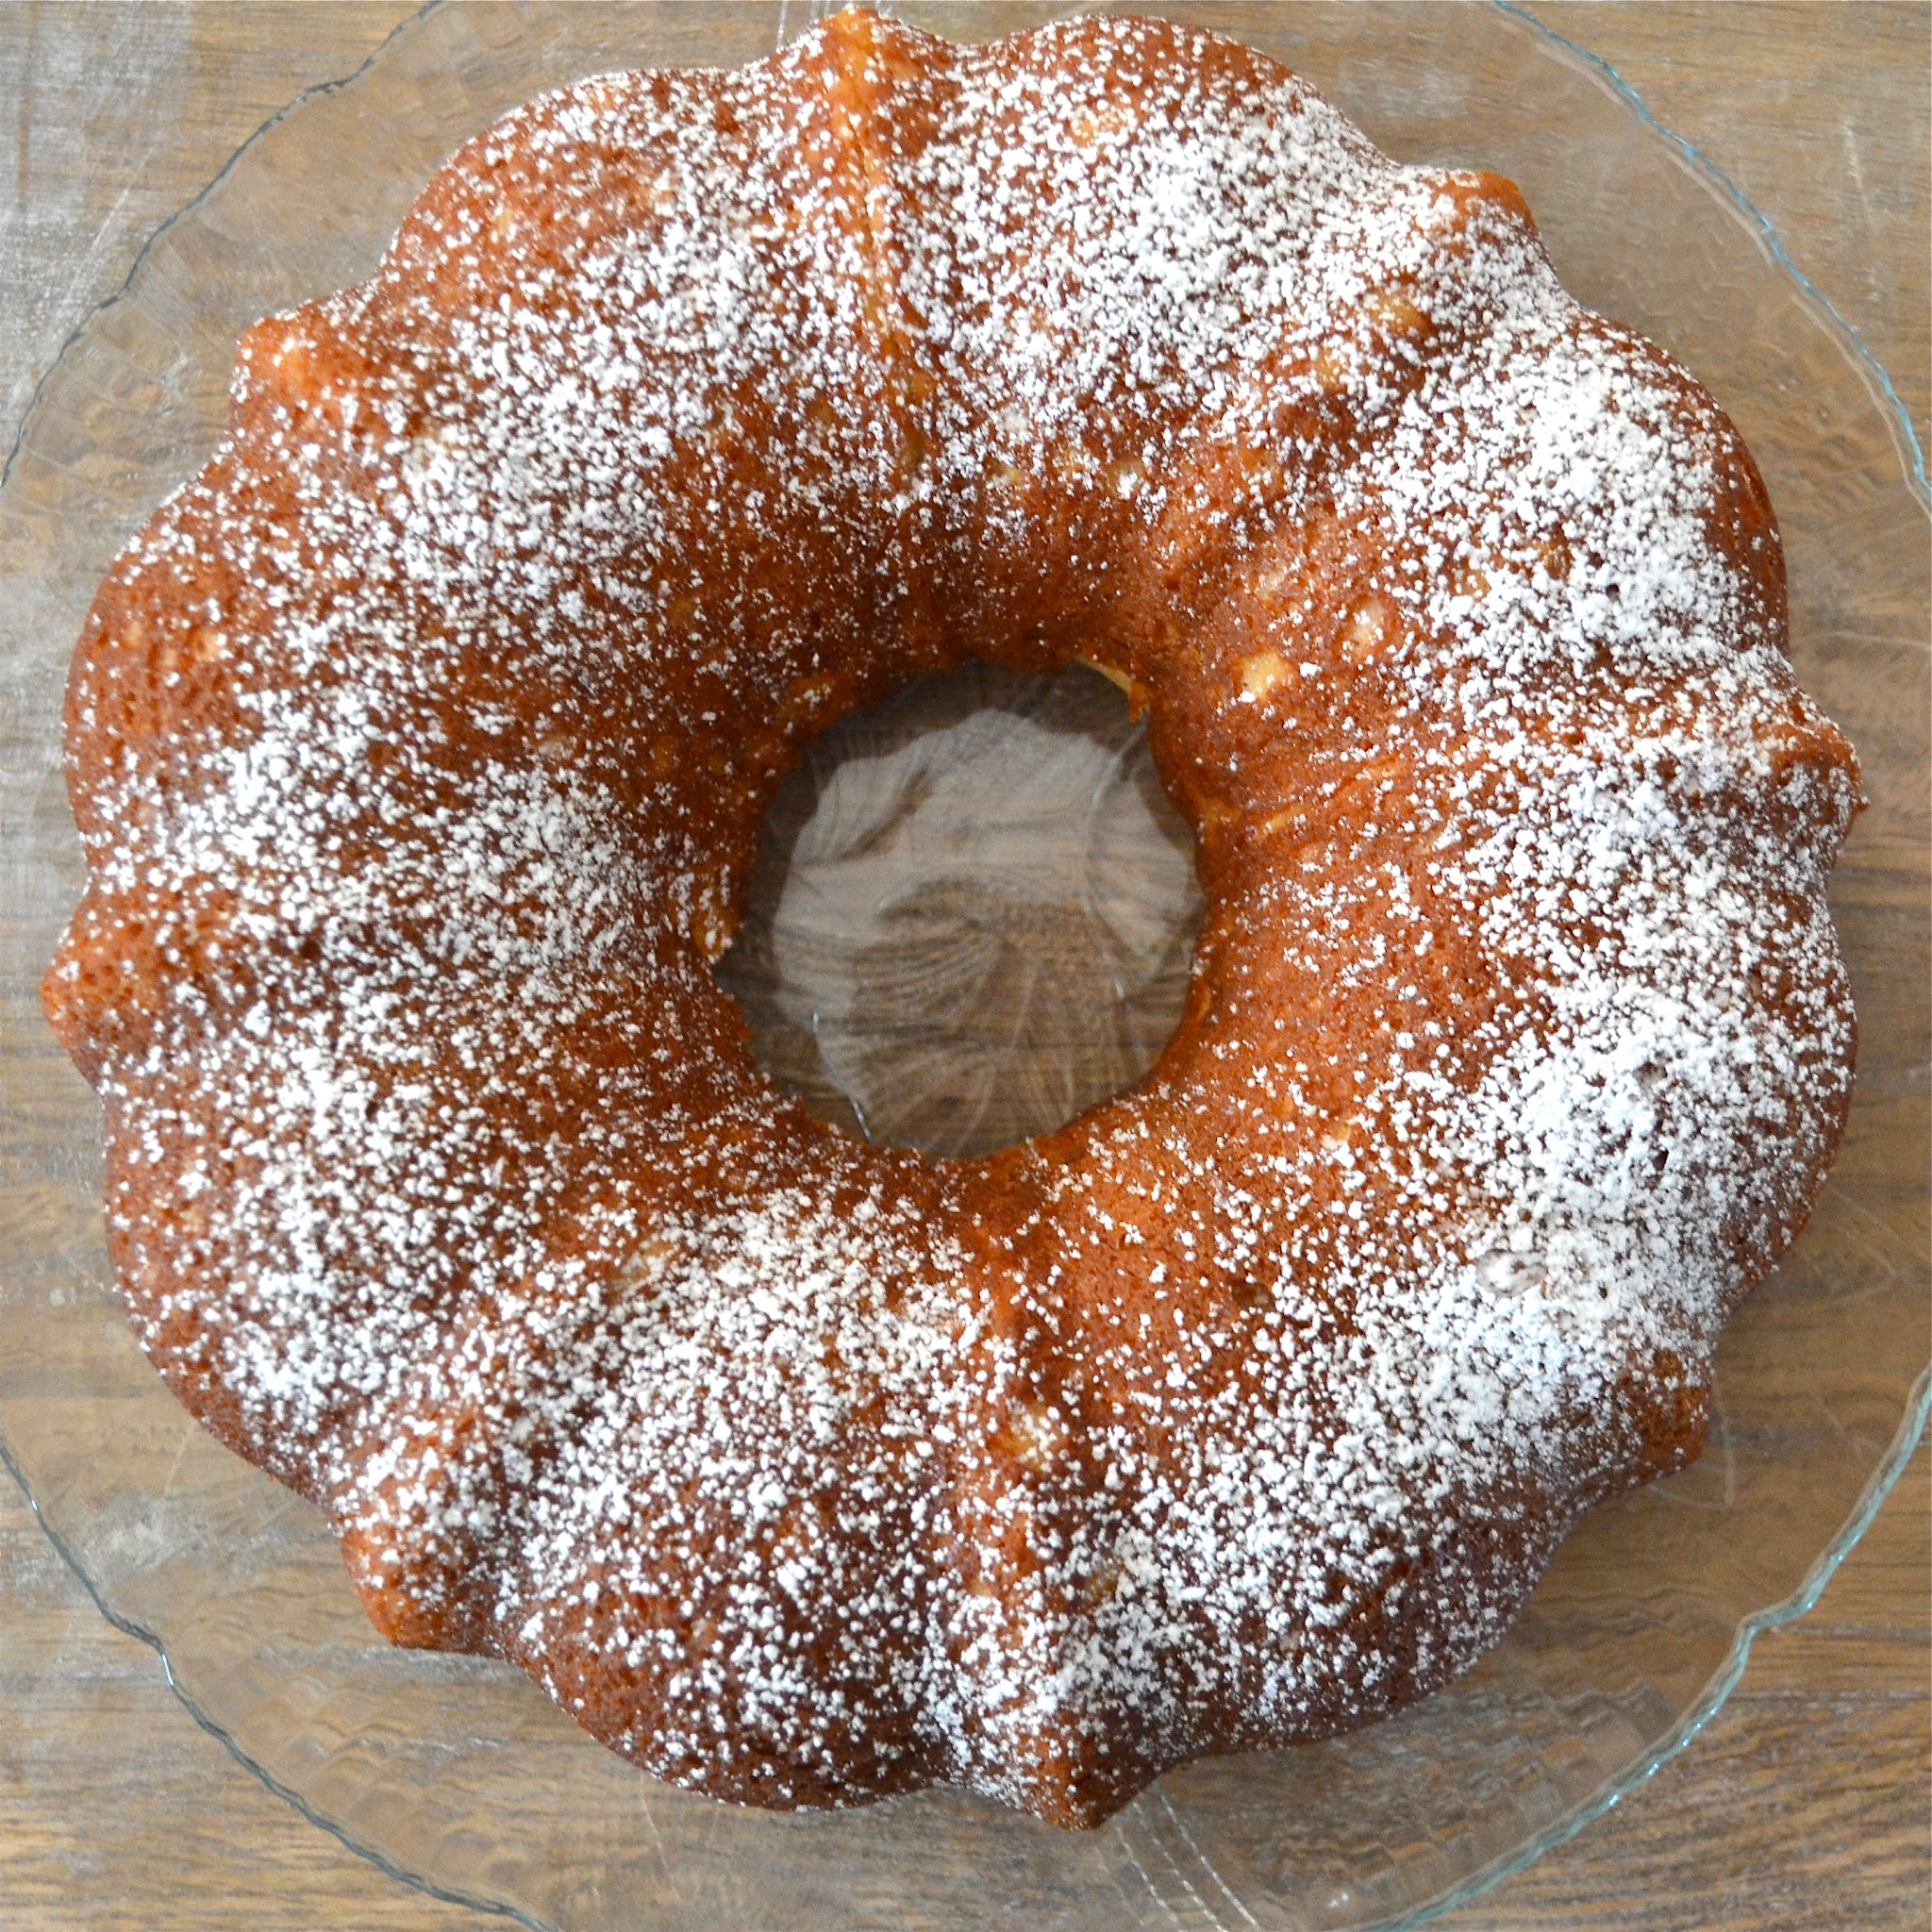 Lemon Sour Cream Bundt Cake - A Dash of Megnut A Dash of Megnut